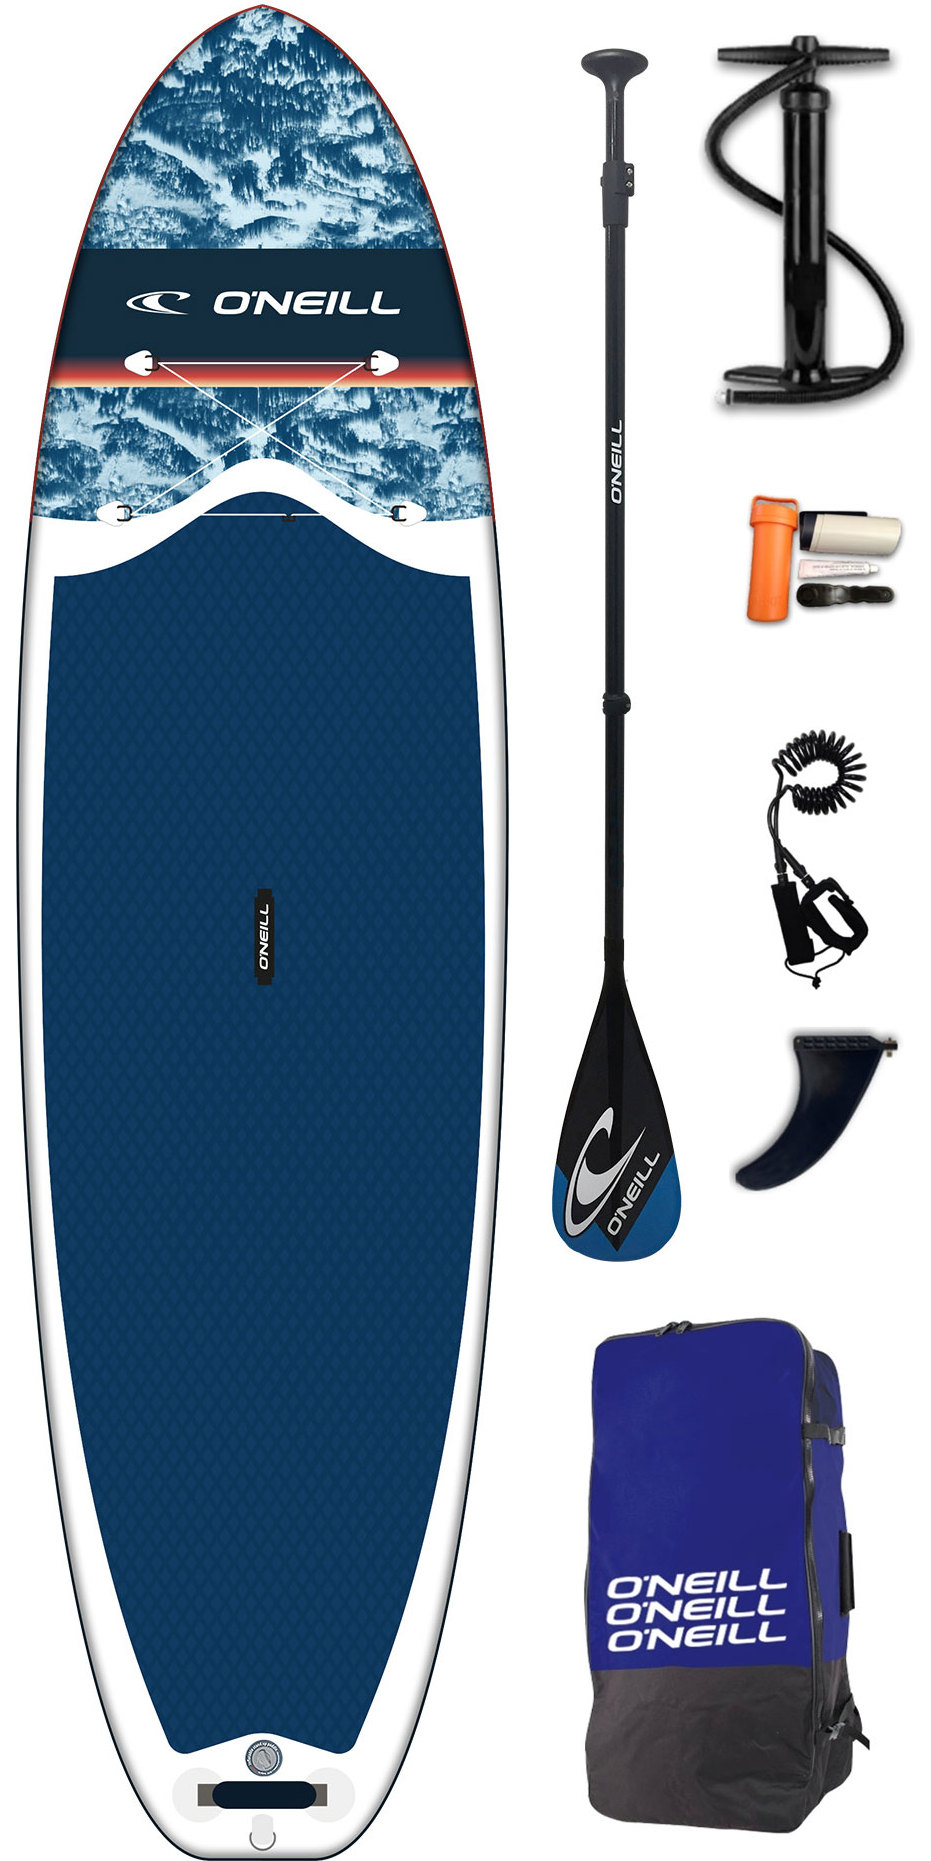 b88c7cd710ce 2019 O Neill Lifestyle 10 6 Inflatable SUP Board